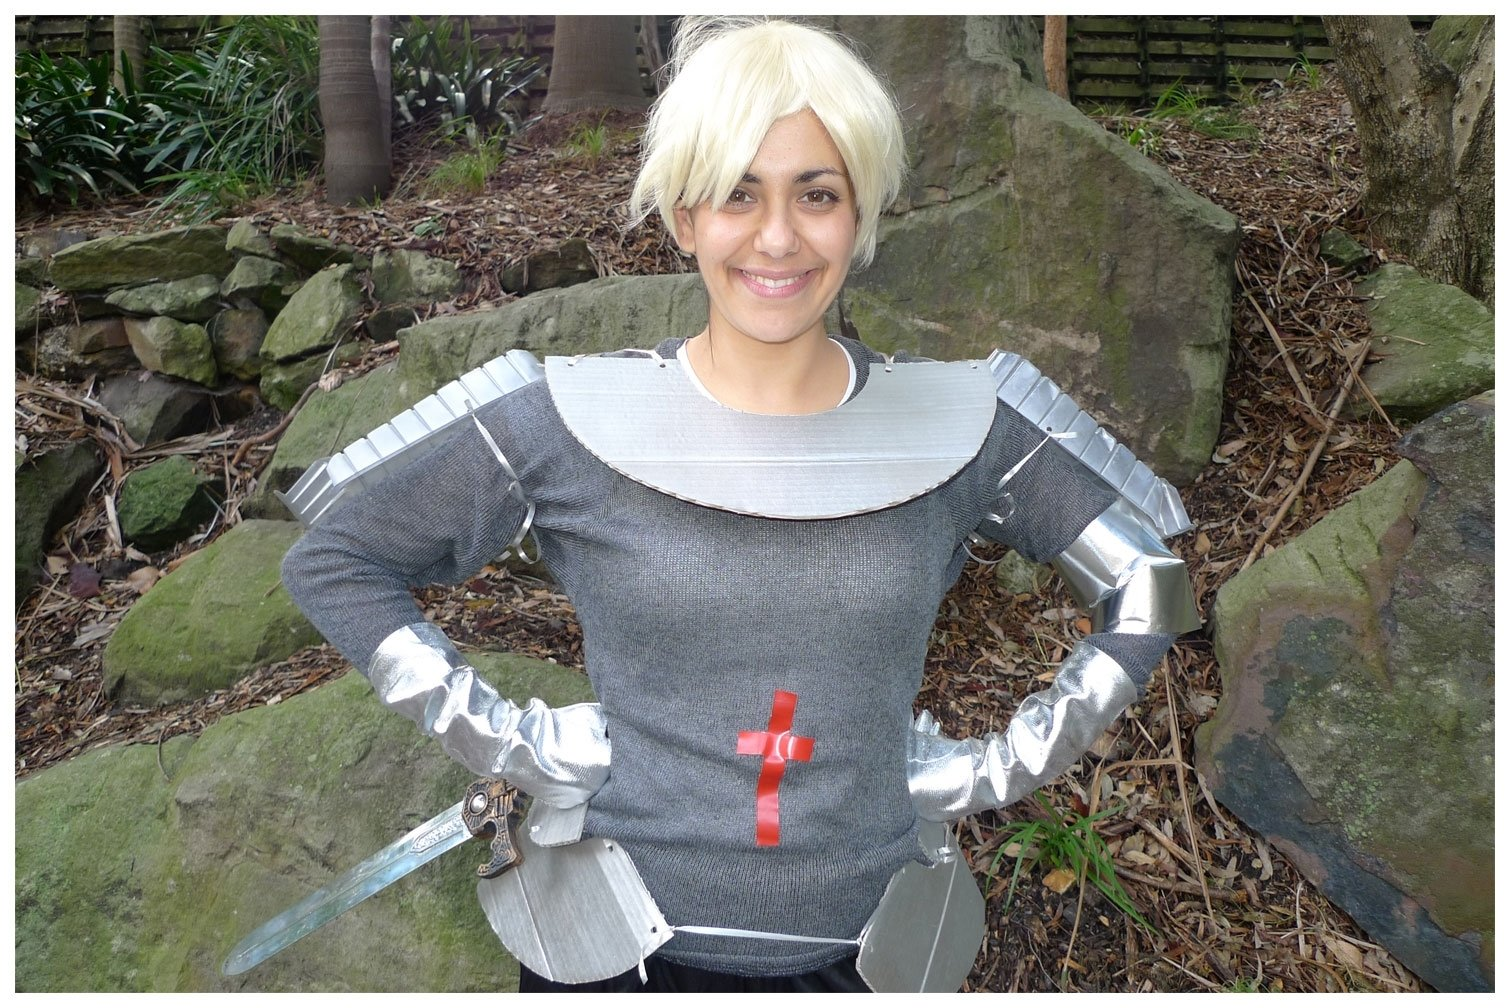 10 Famous Joan Of Arc Costume Ideas day 337 joan of arc theme me costume fancy dress party theme